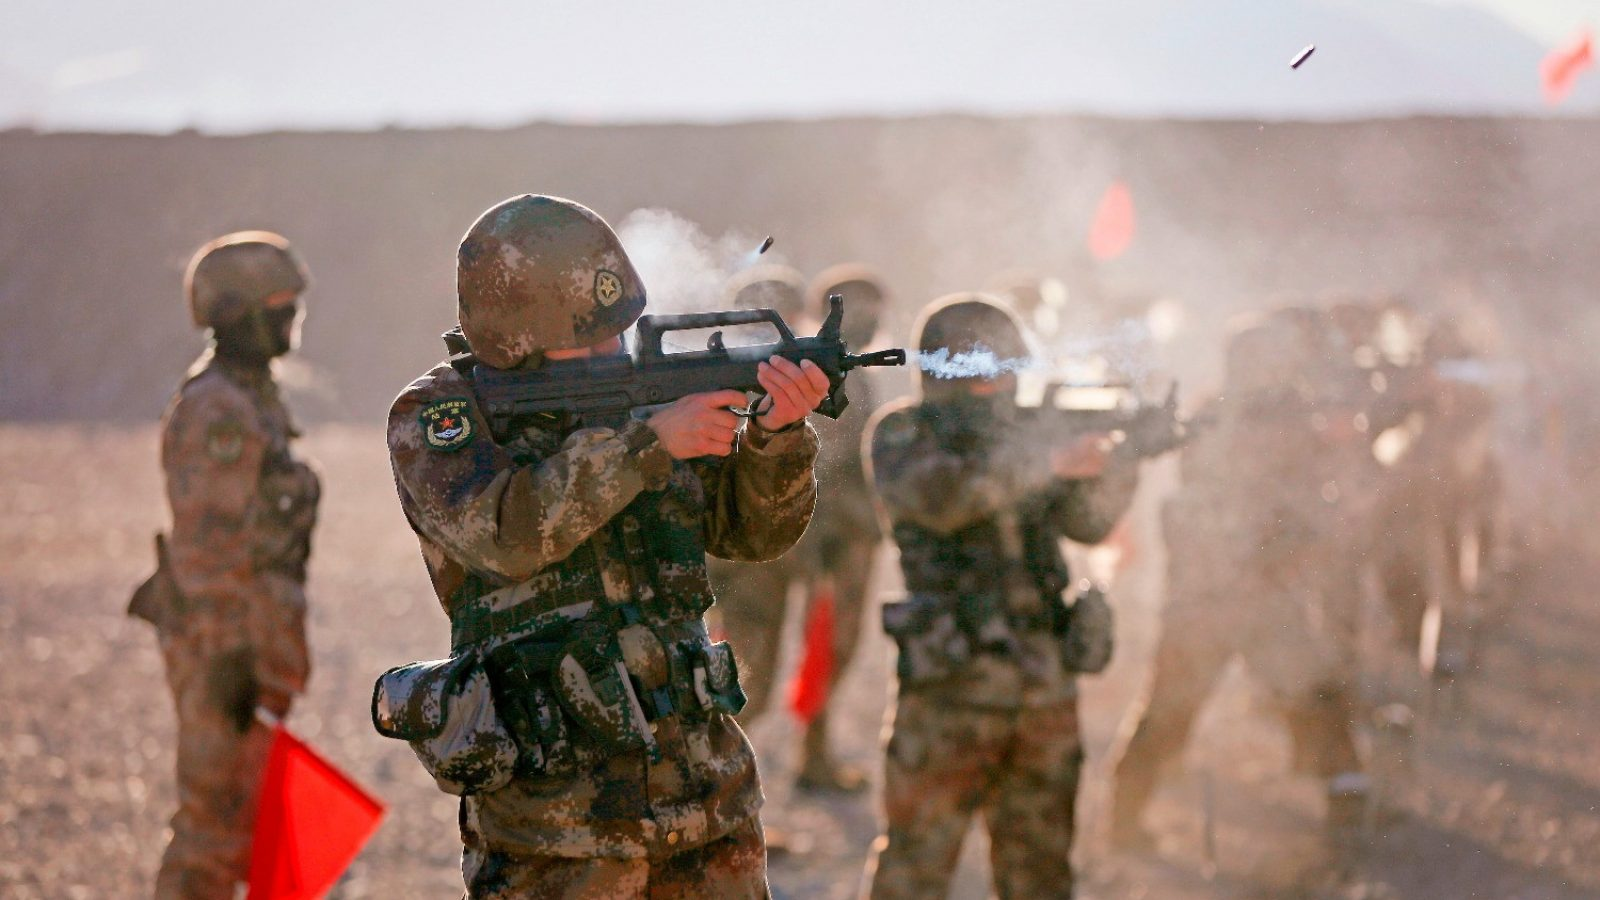 Members of the PLA fire rifles at a military training ground.